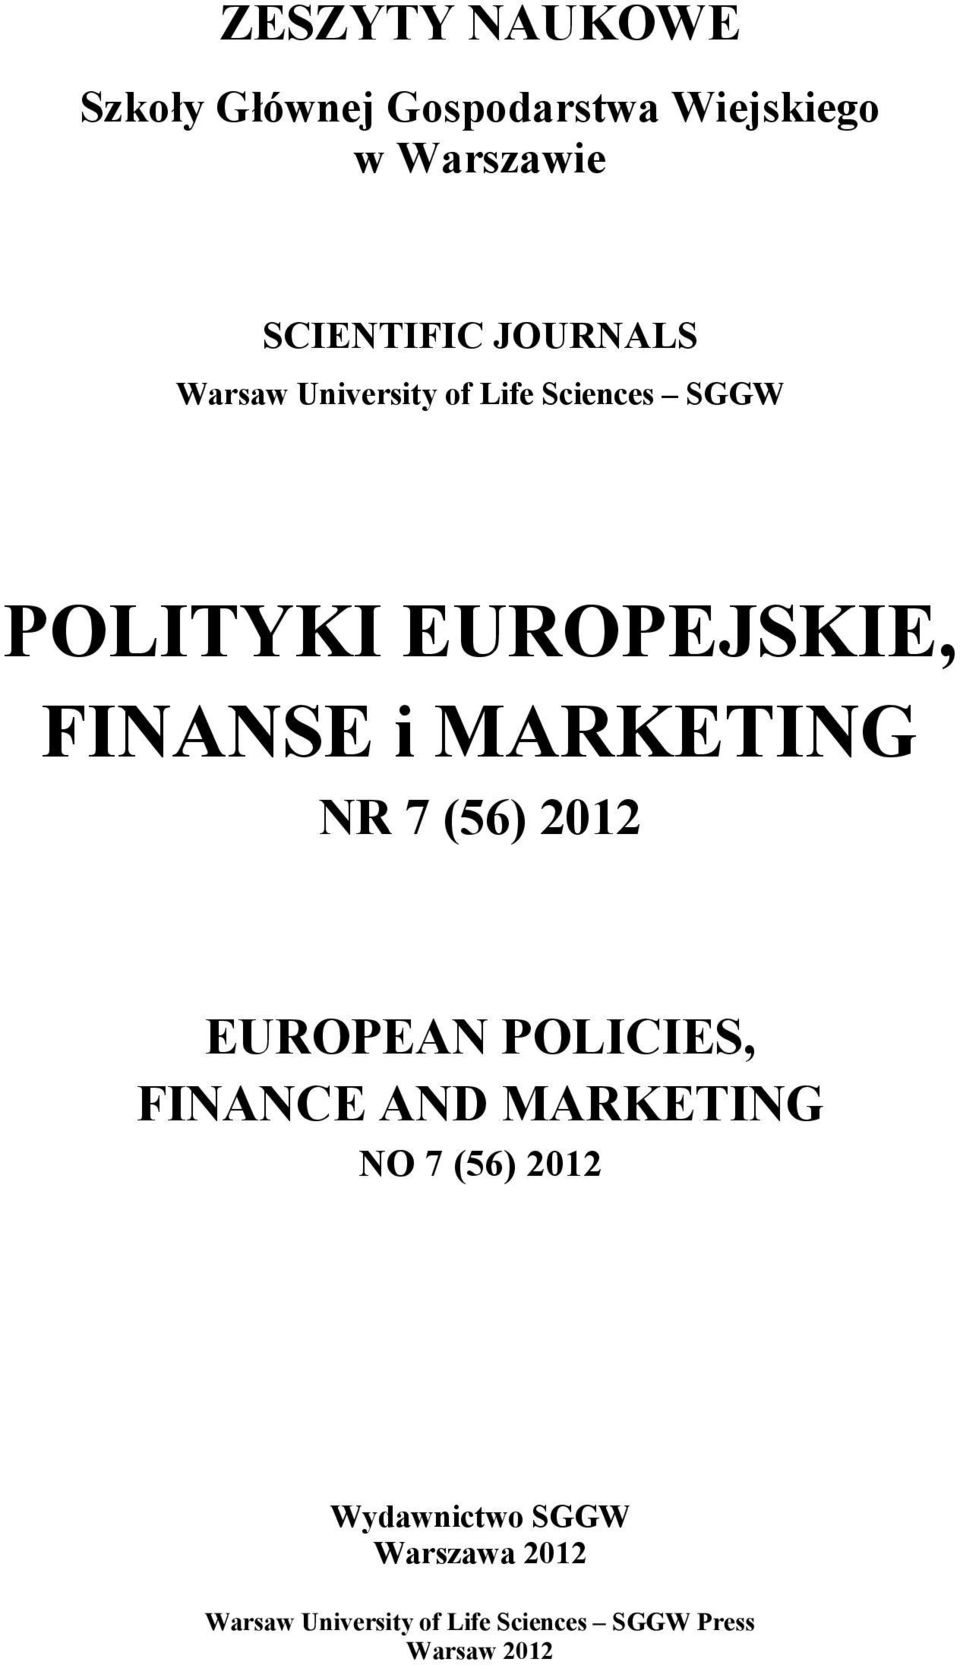 MARKETING NR 7 (56) 2012 EUROPEAN POLICIES, FINANCE AND MARKETING NO 7 (56) 2012